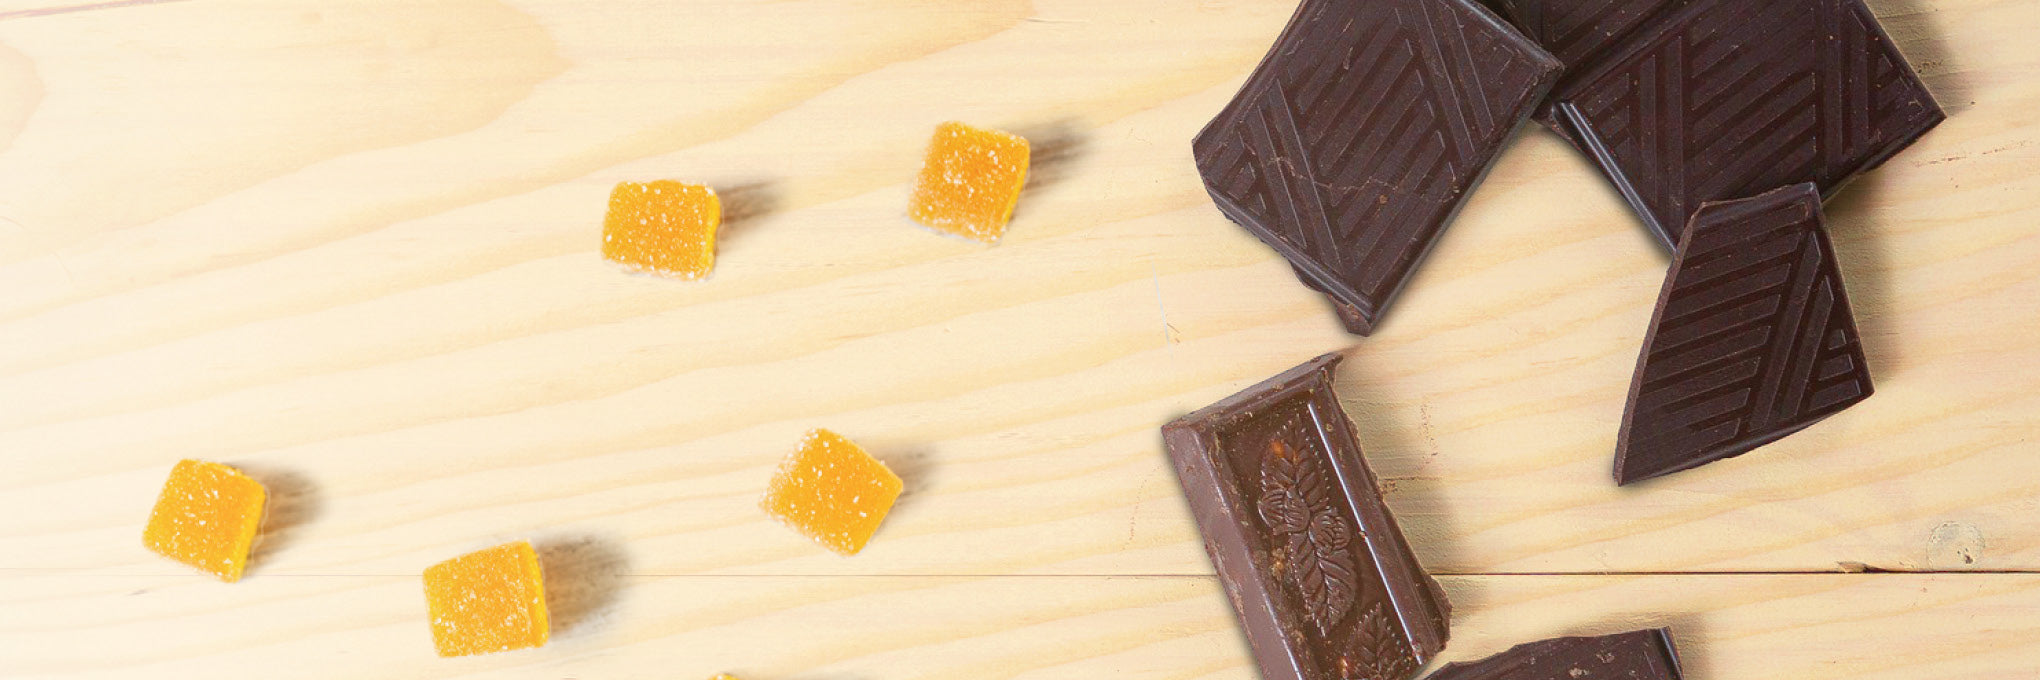 Top questions about the new product types: edibles, extracts, and topicals